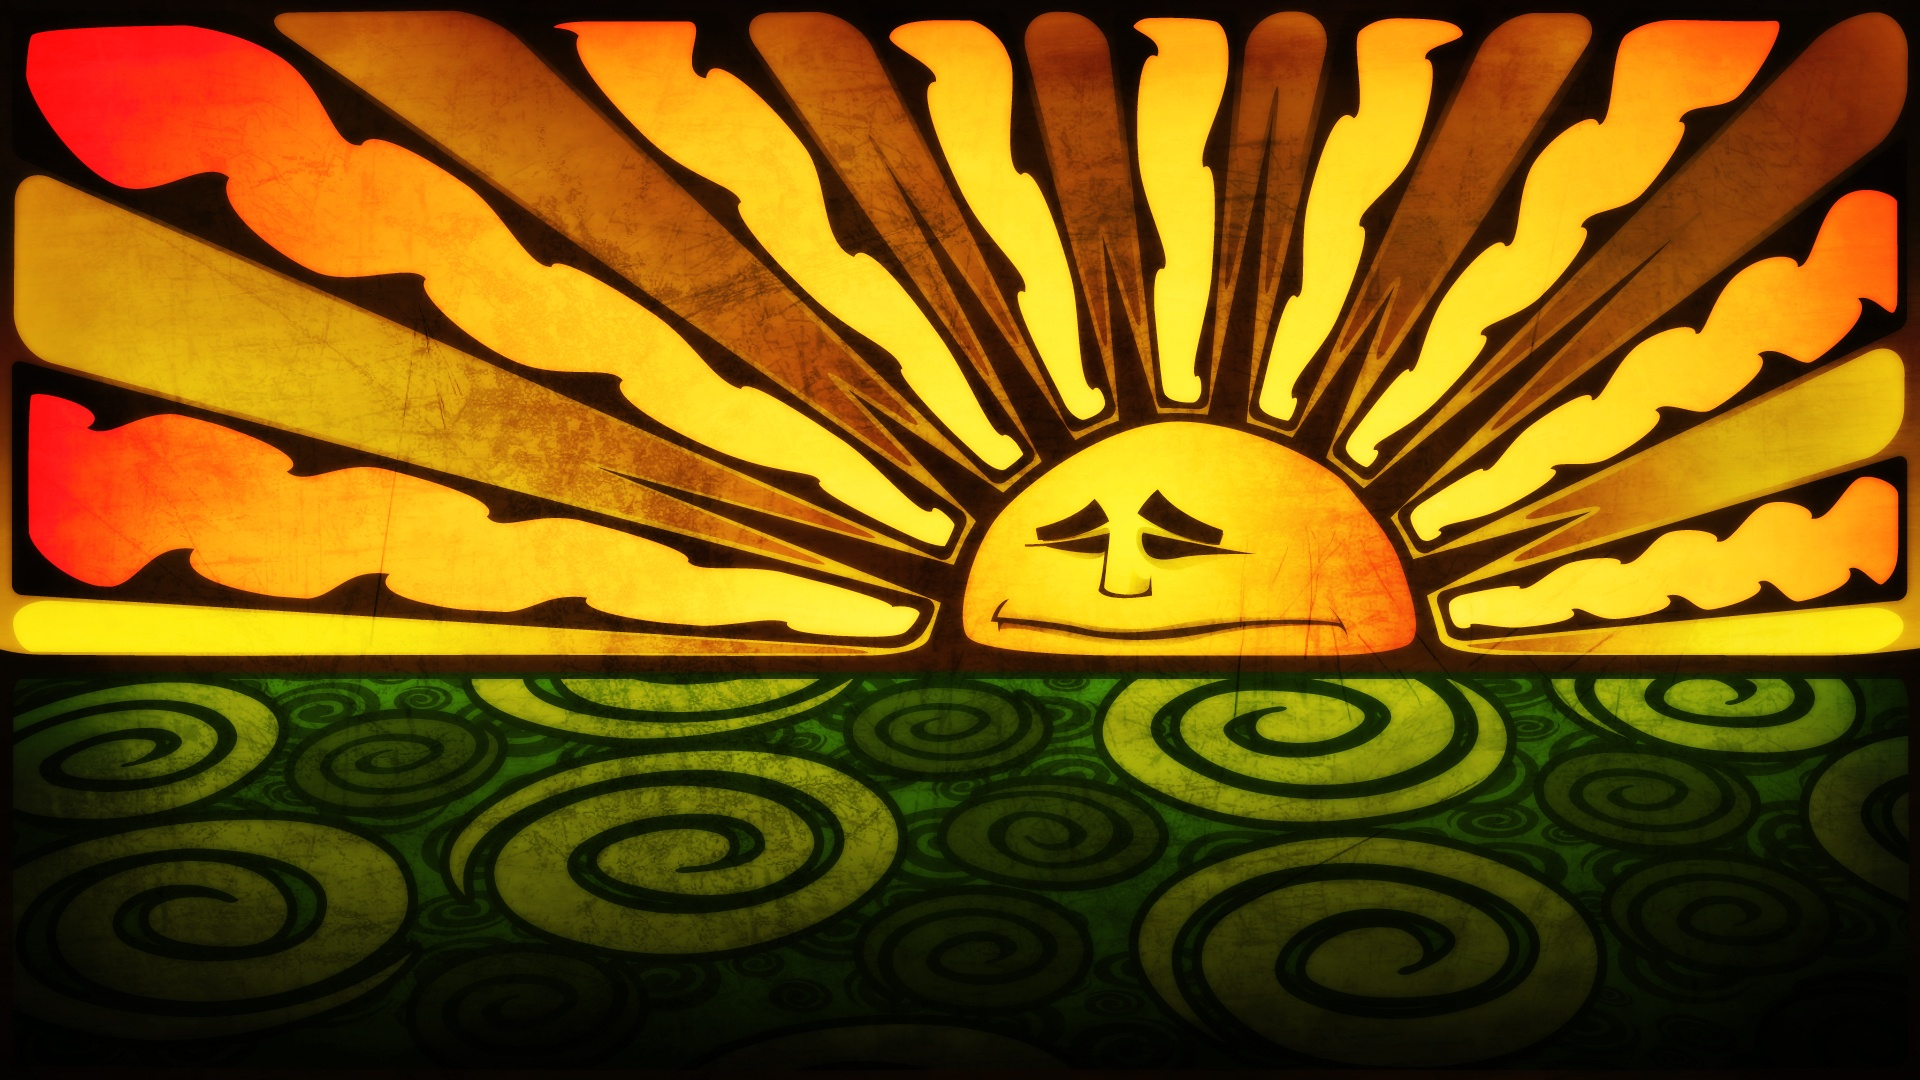 Trippy Sun Desktop Wallpaper 50031 1920x1080px